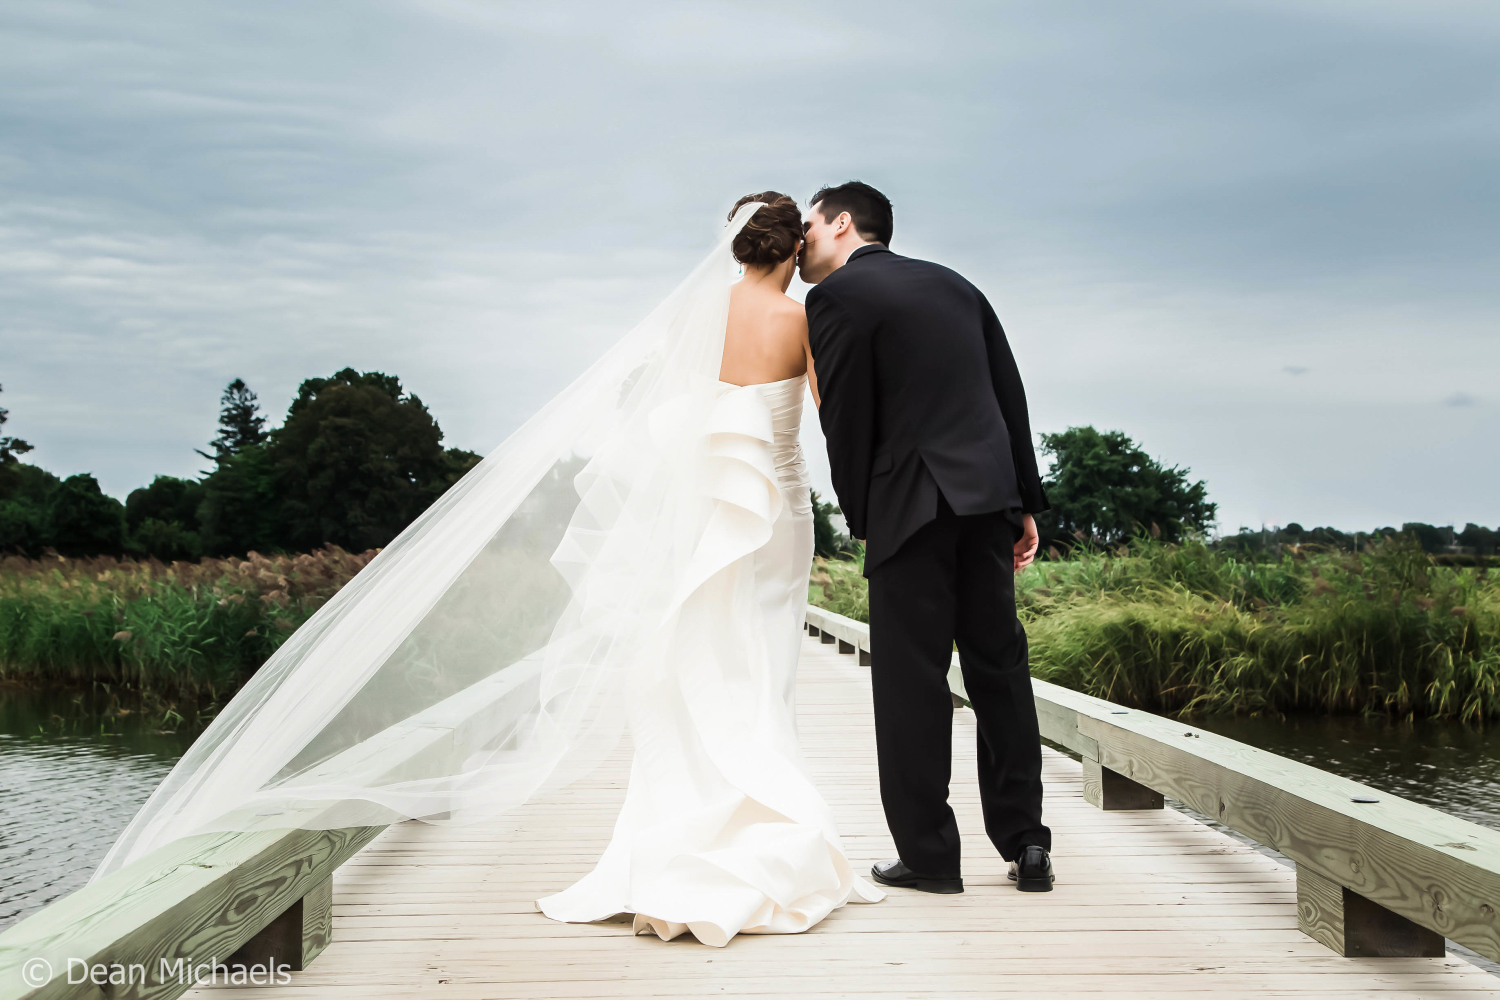 wedding-photographer-gallery-2-KP5619FG5P6G.jpg